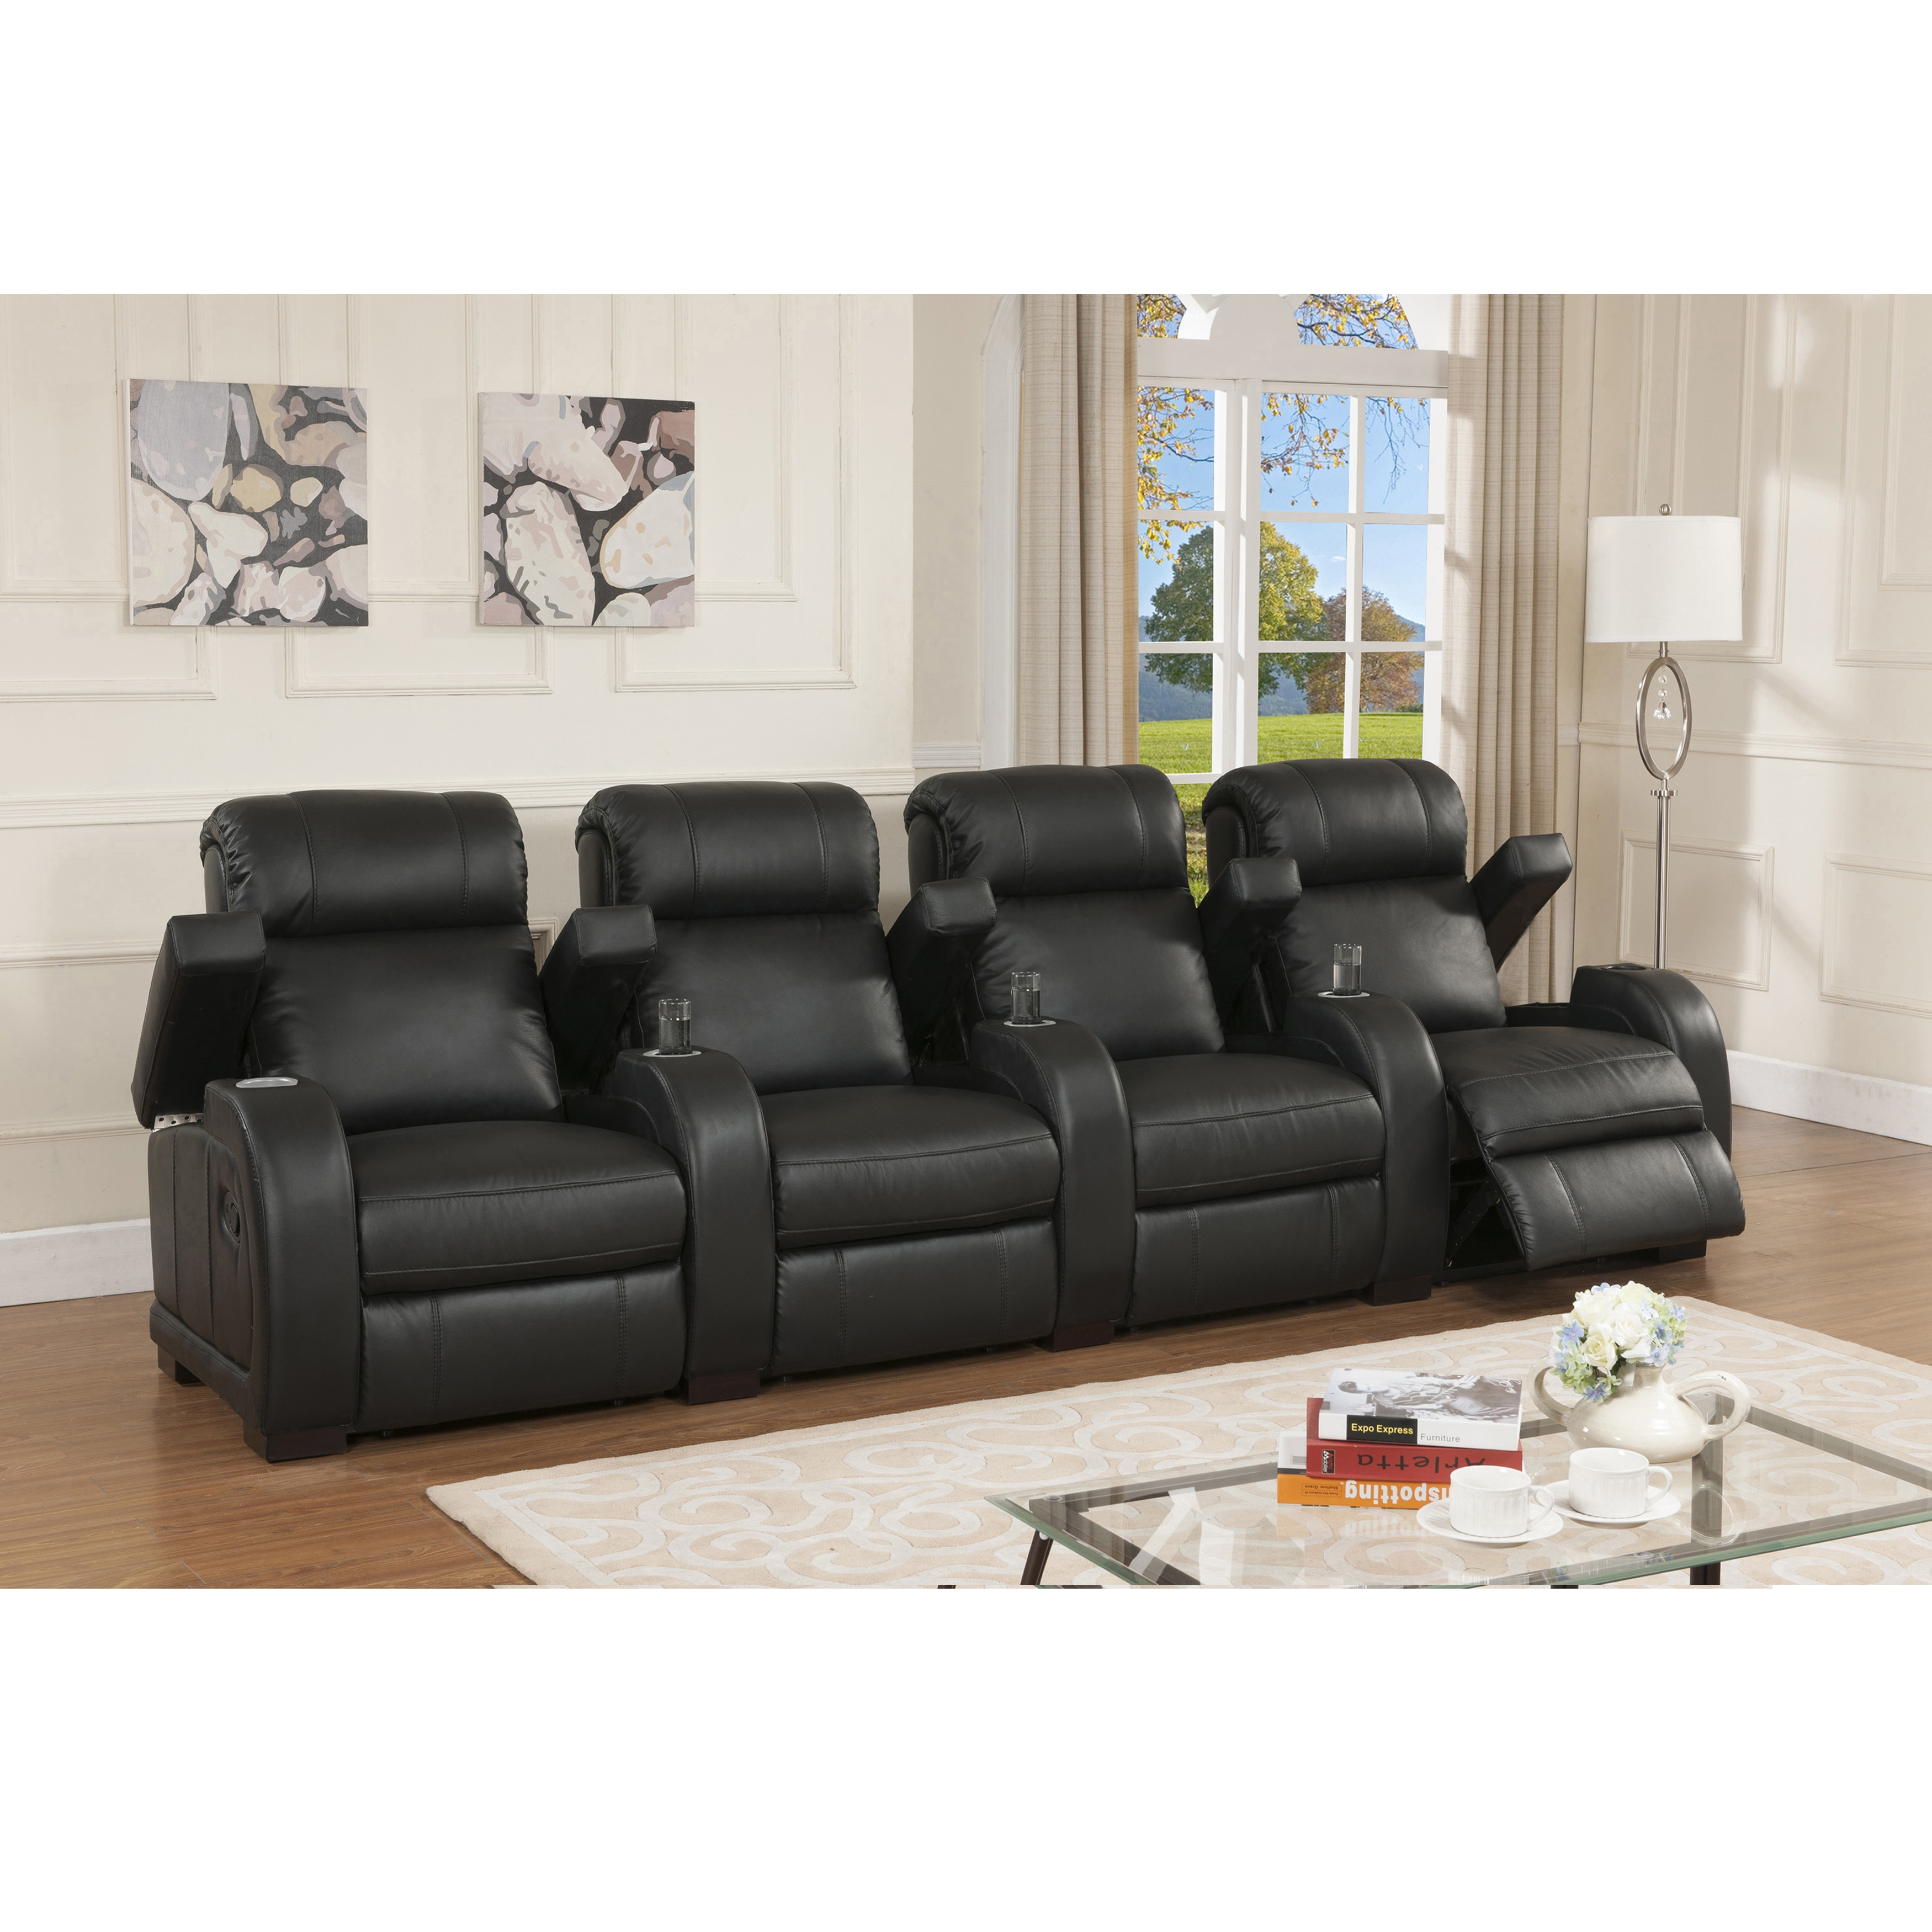 Overstock.com Cooper Four Seat Black Top Grain Leather Recliner Home Theater Seating Set at Sears.com